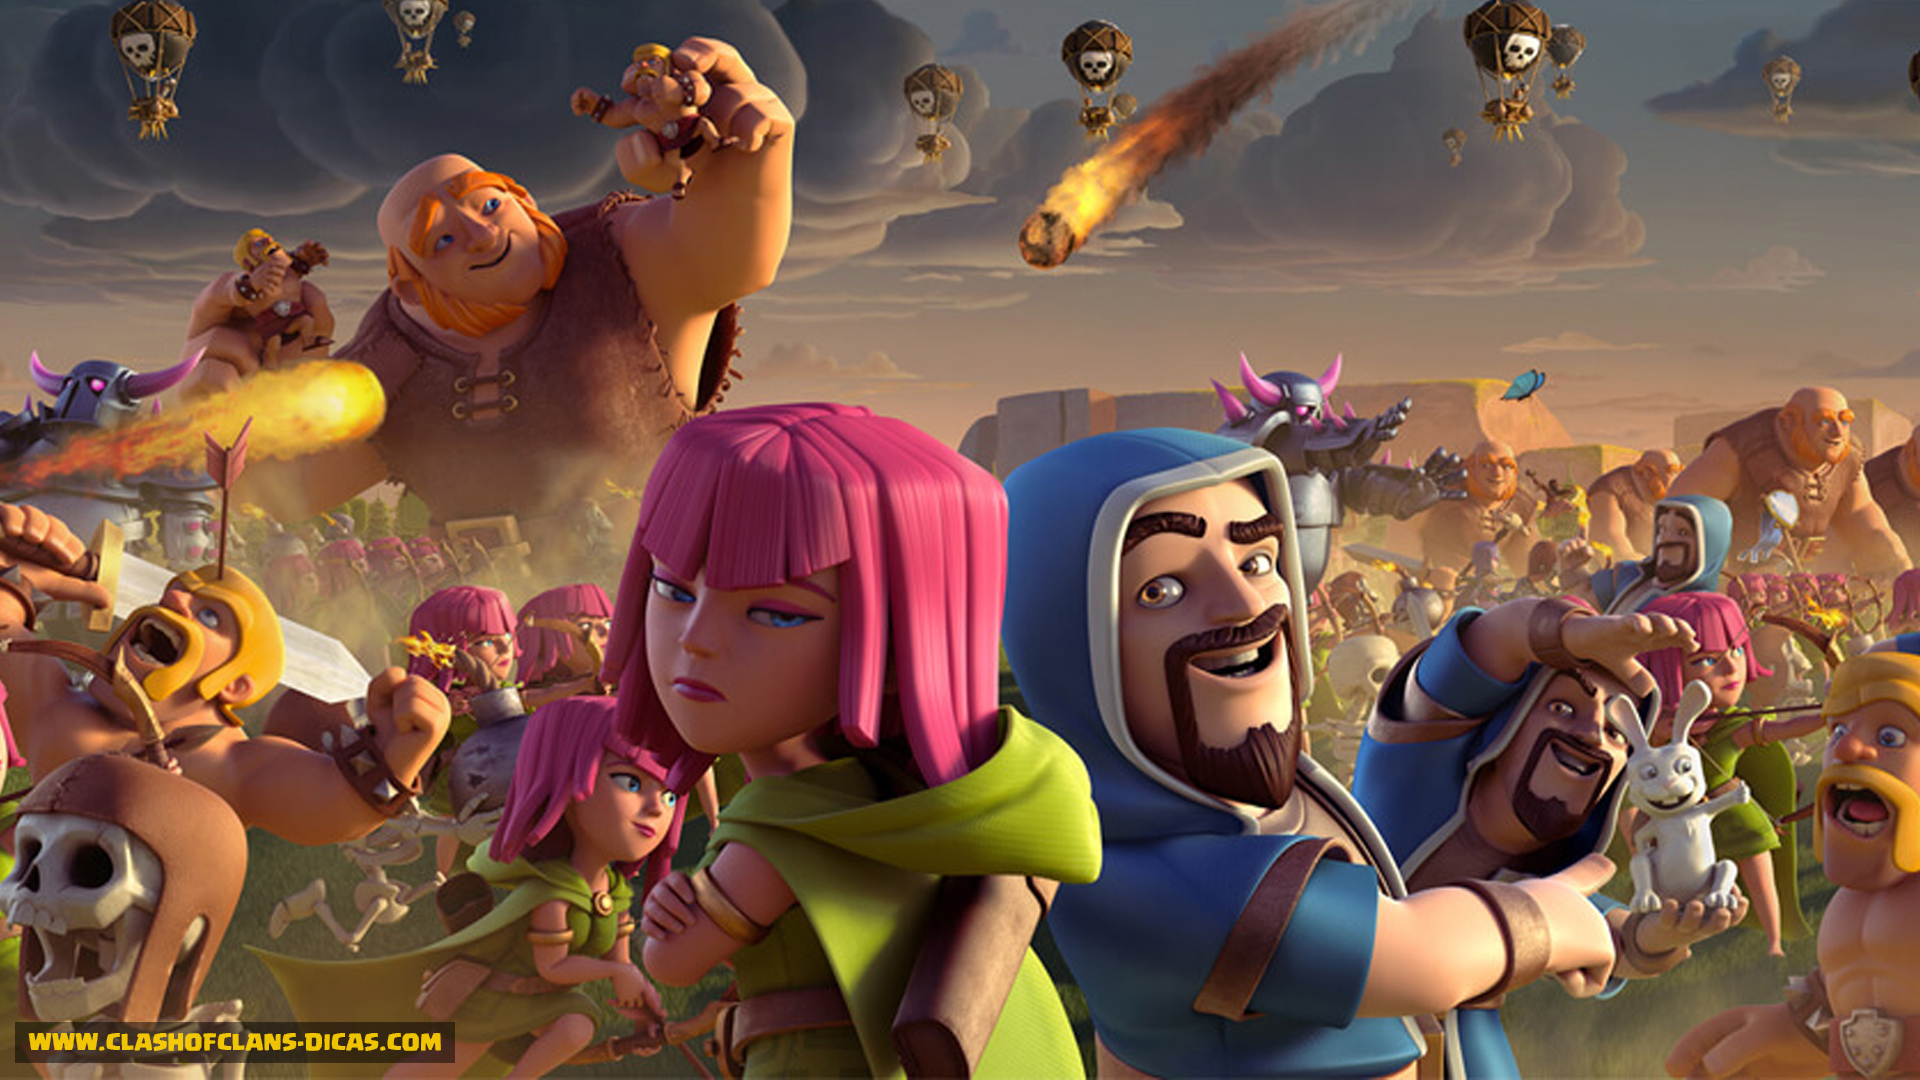 Clash of Clans HD Wallpapers  Clash of Clans Land 1920x1080